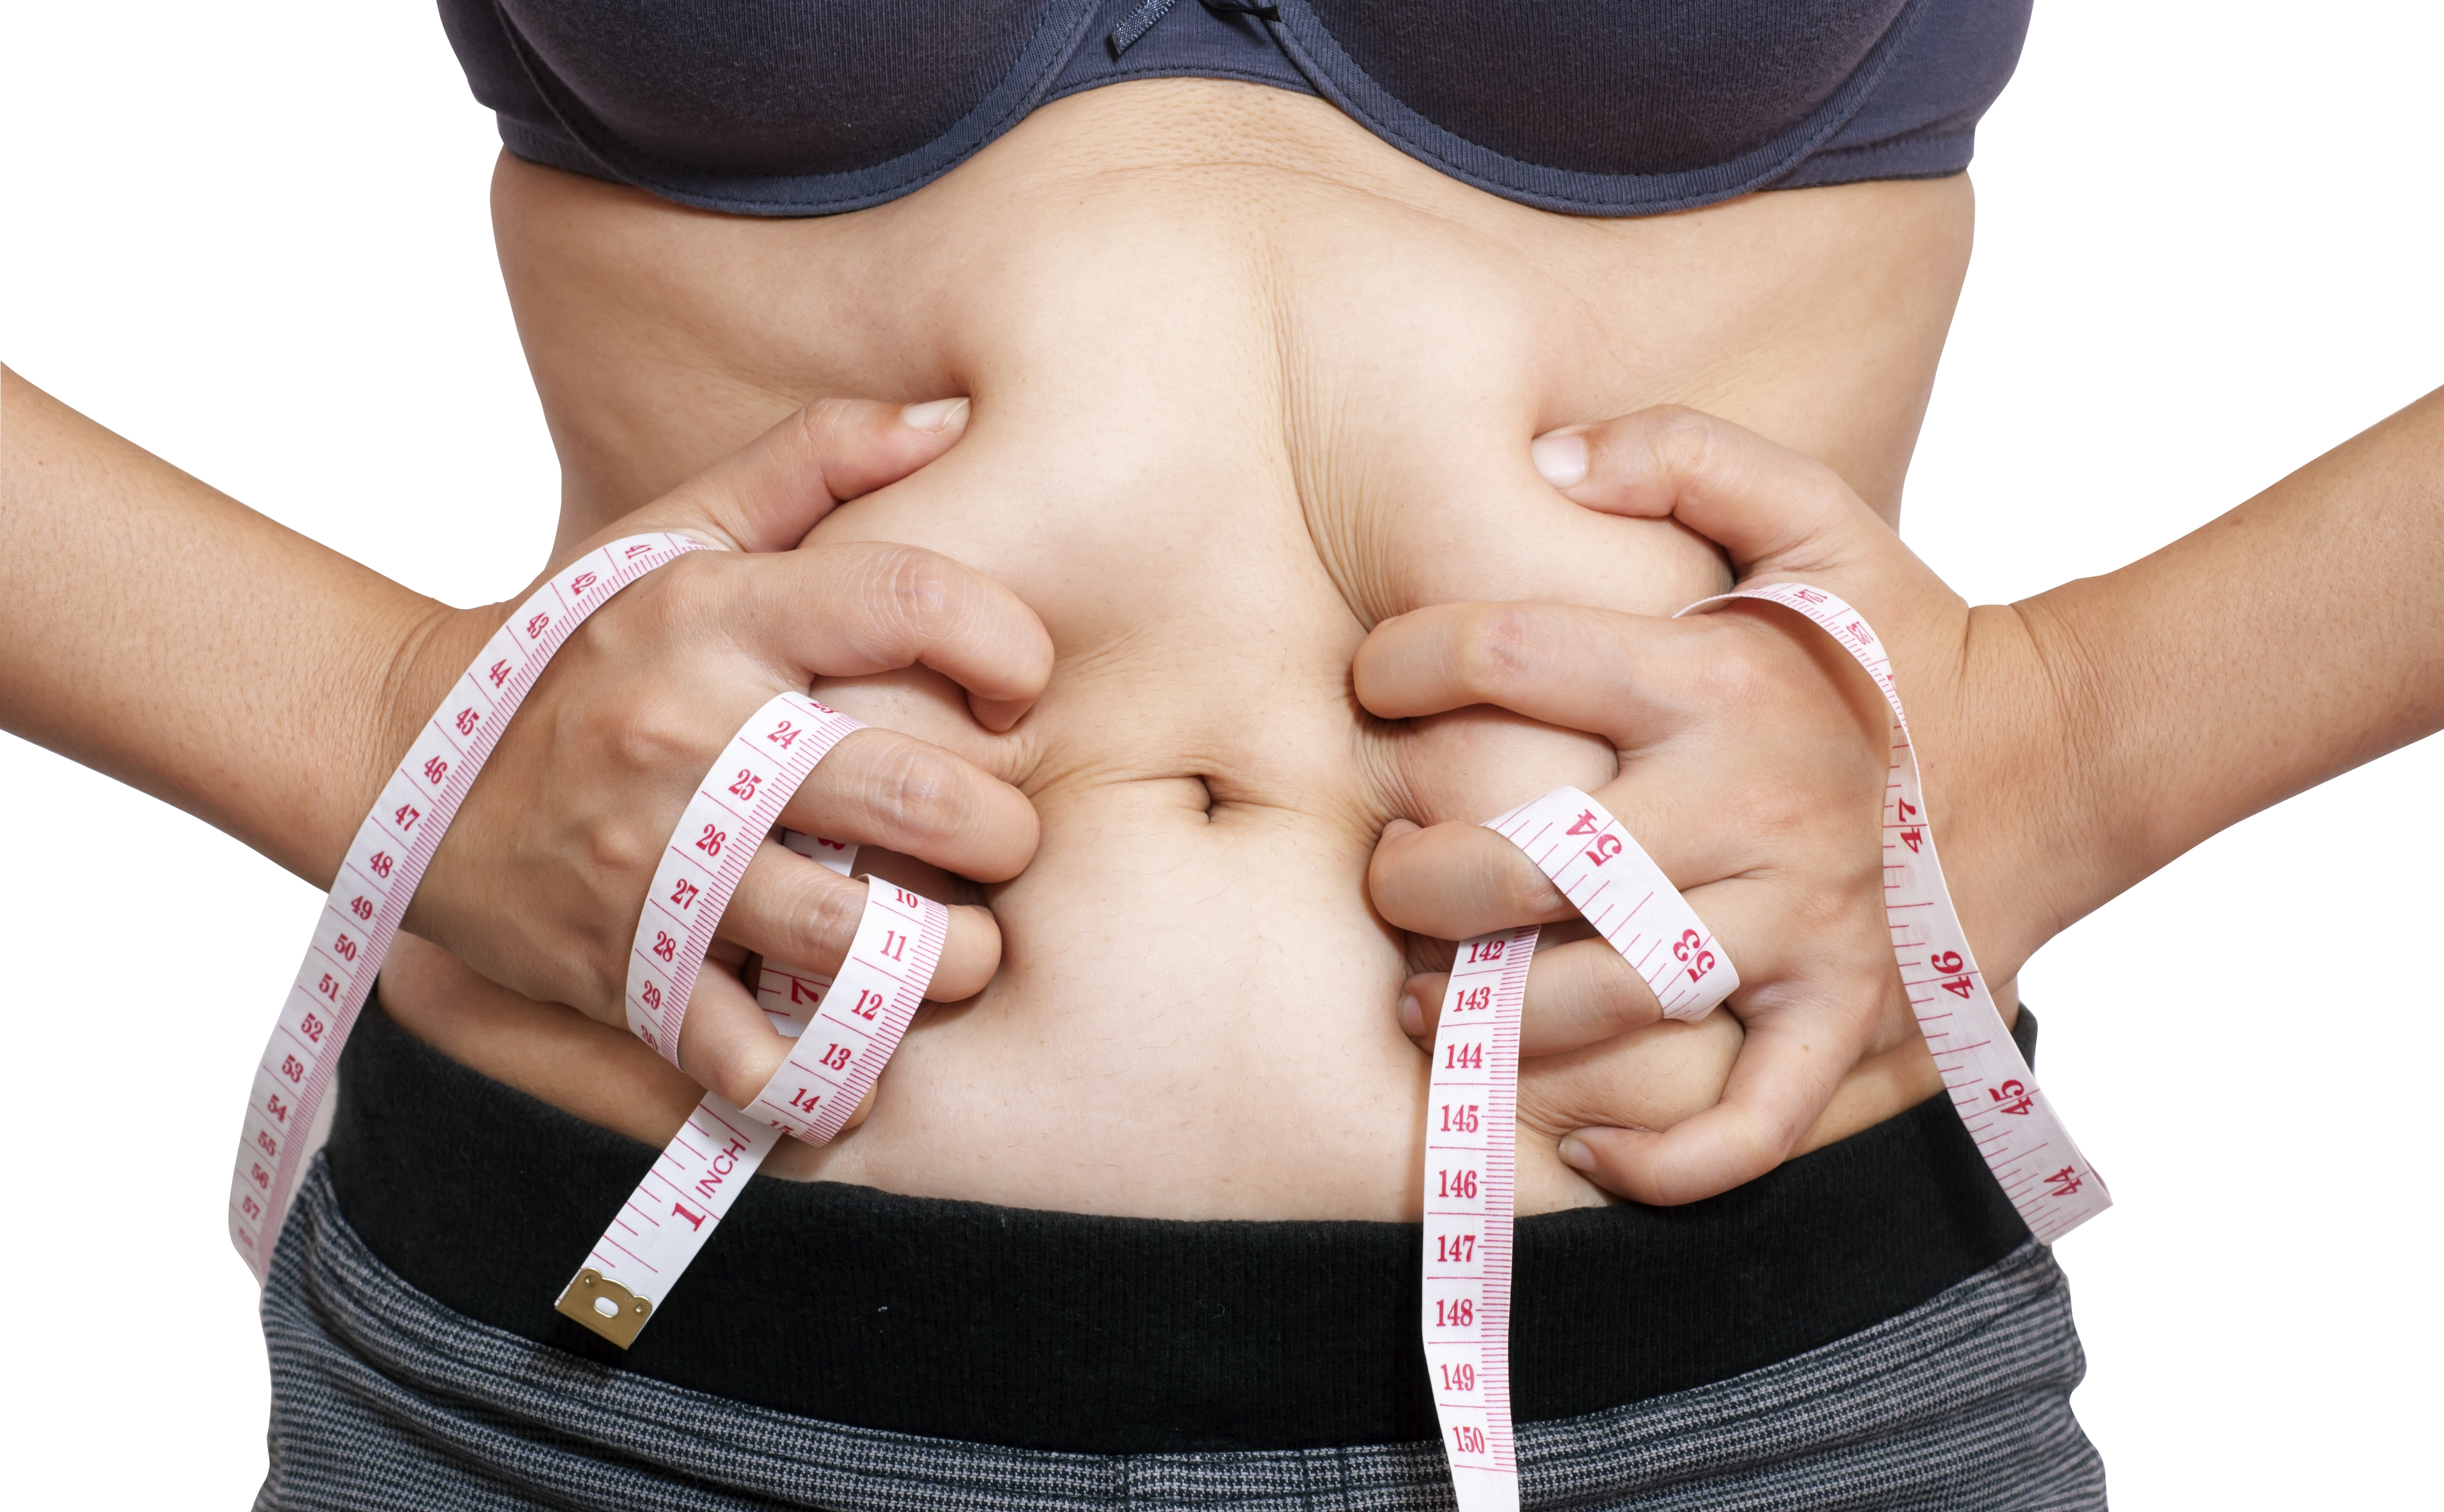 How to lose weight does not swing arms